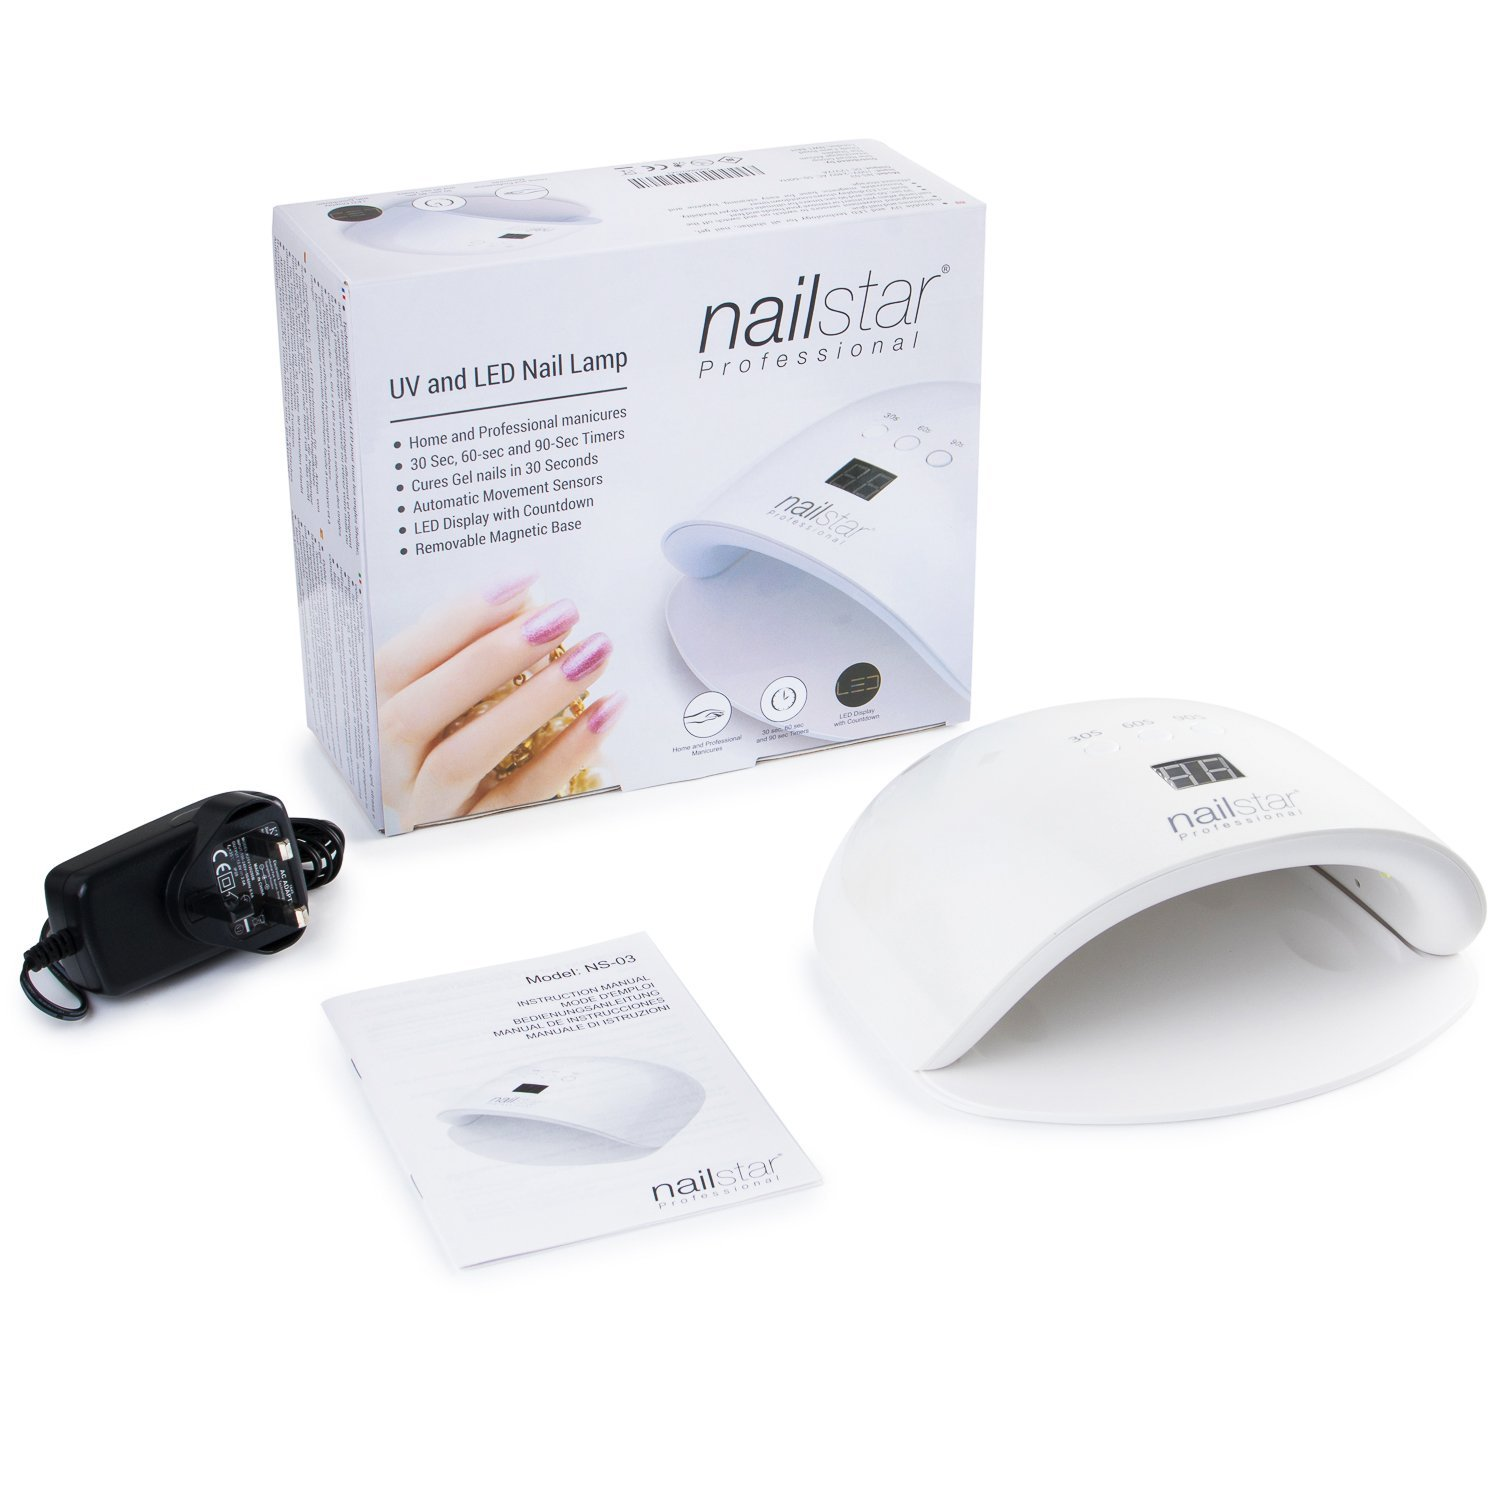 Amazon.com: NailStar® Professional UV and LED Nail Lamp and Nail Dryer with 3 Built-in Timer and LED Display for Shellac and Gel Nails): Beauty